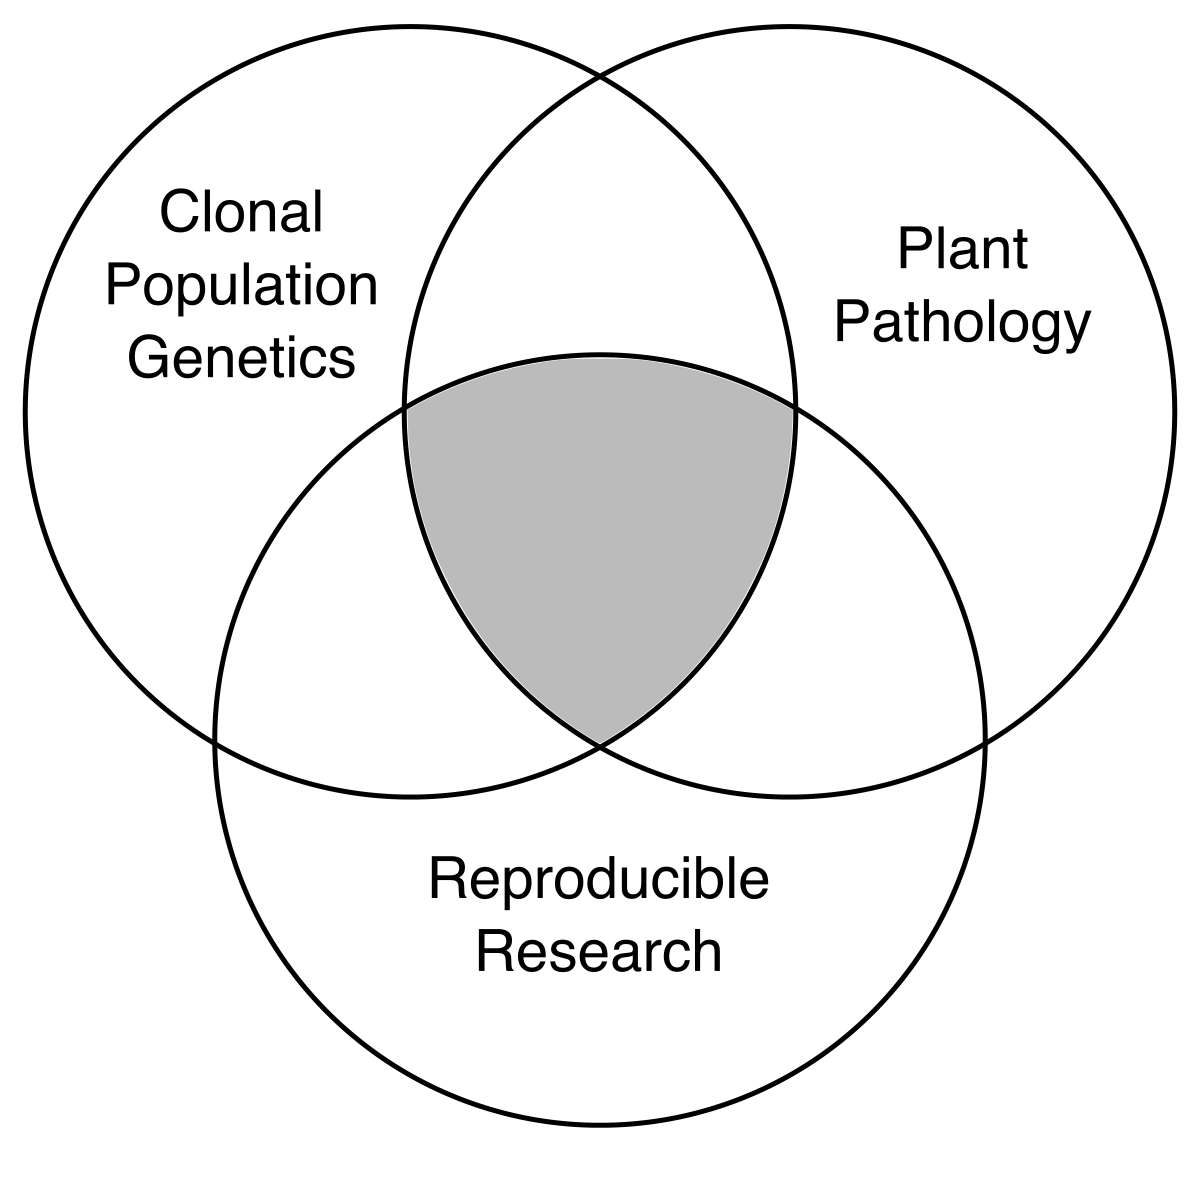 Development and Application of Tools for Genetic Analysis